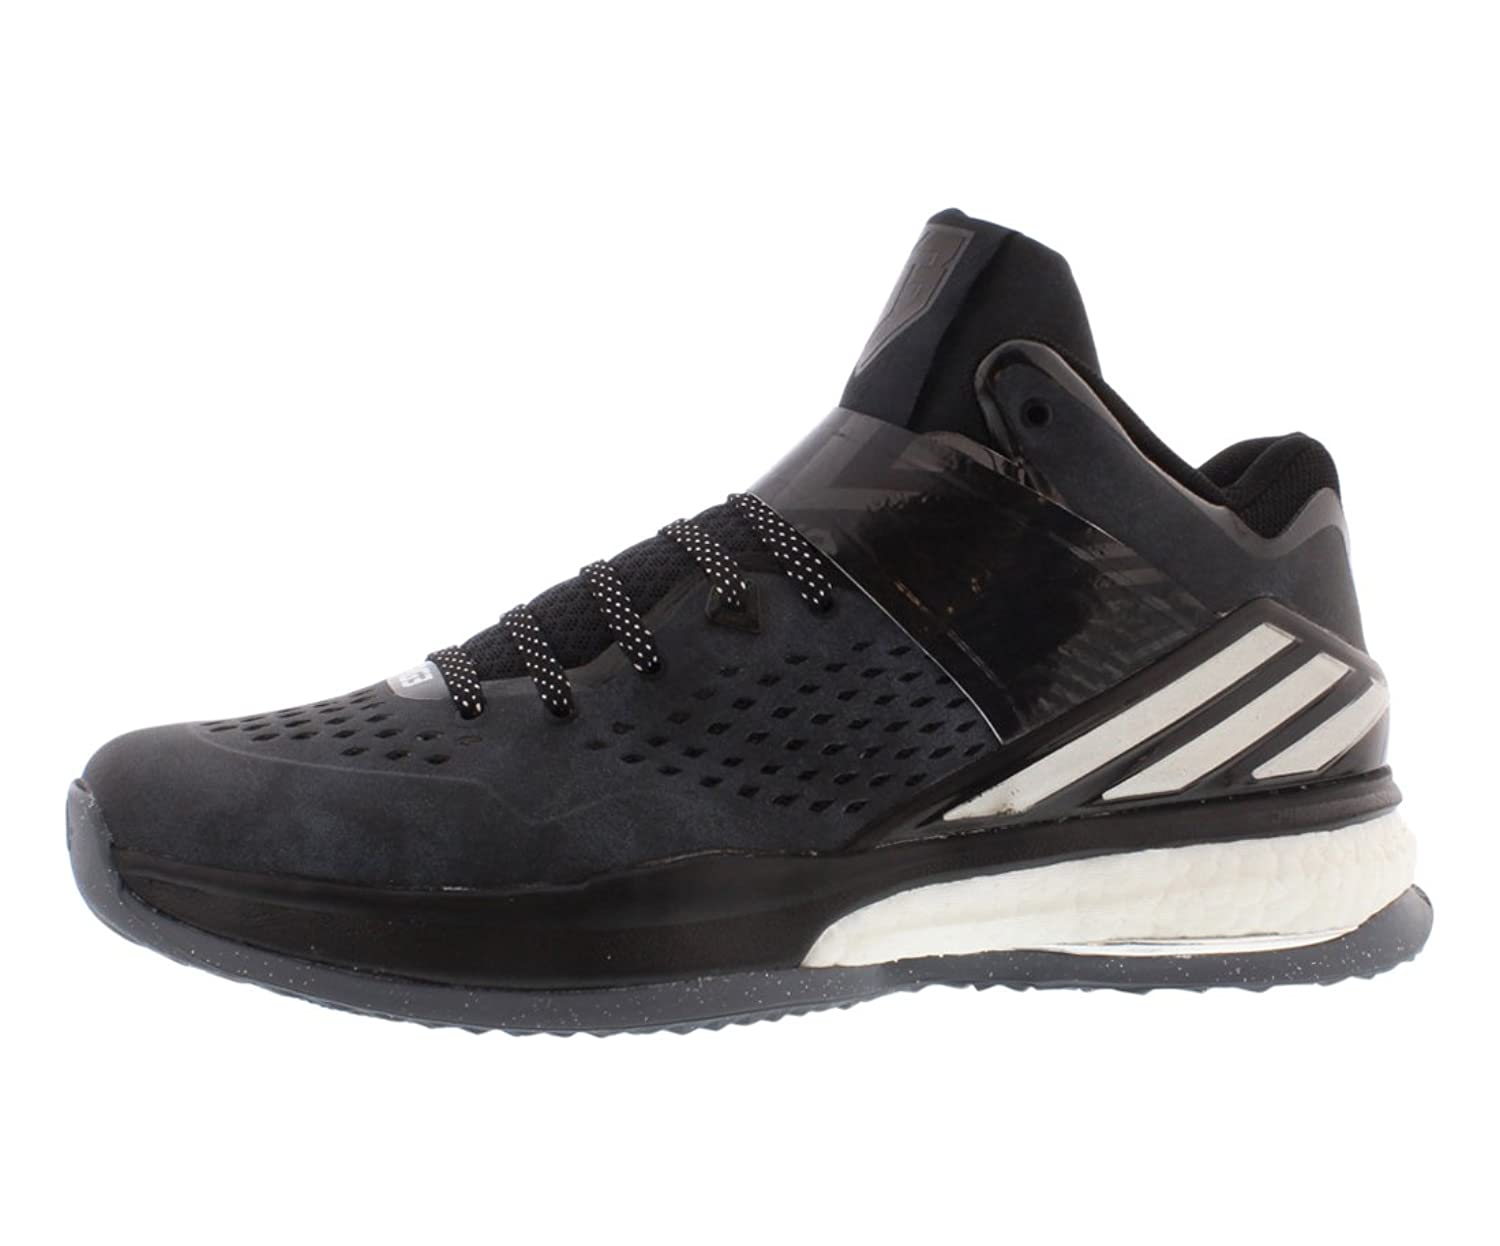 Adidas Rg Energy Boost Shoes